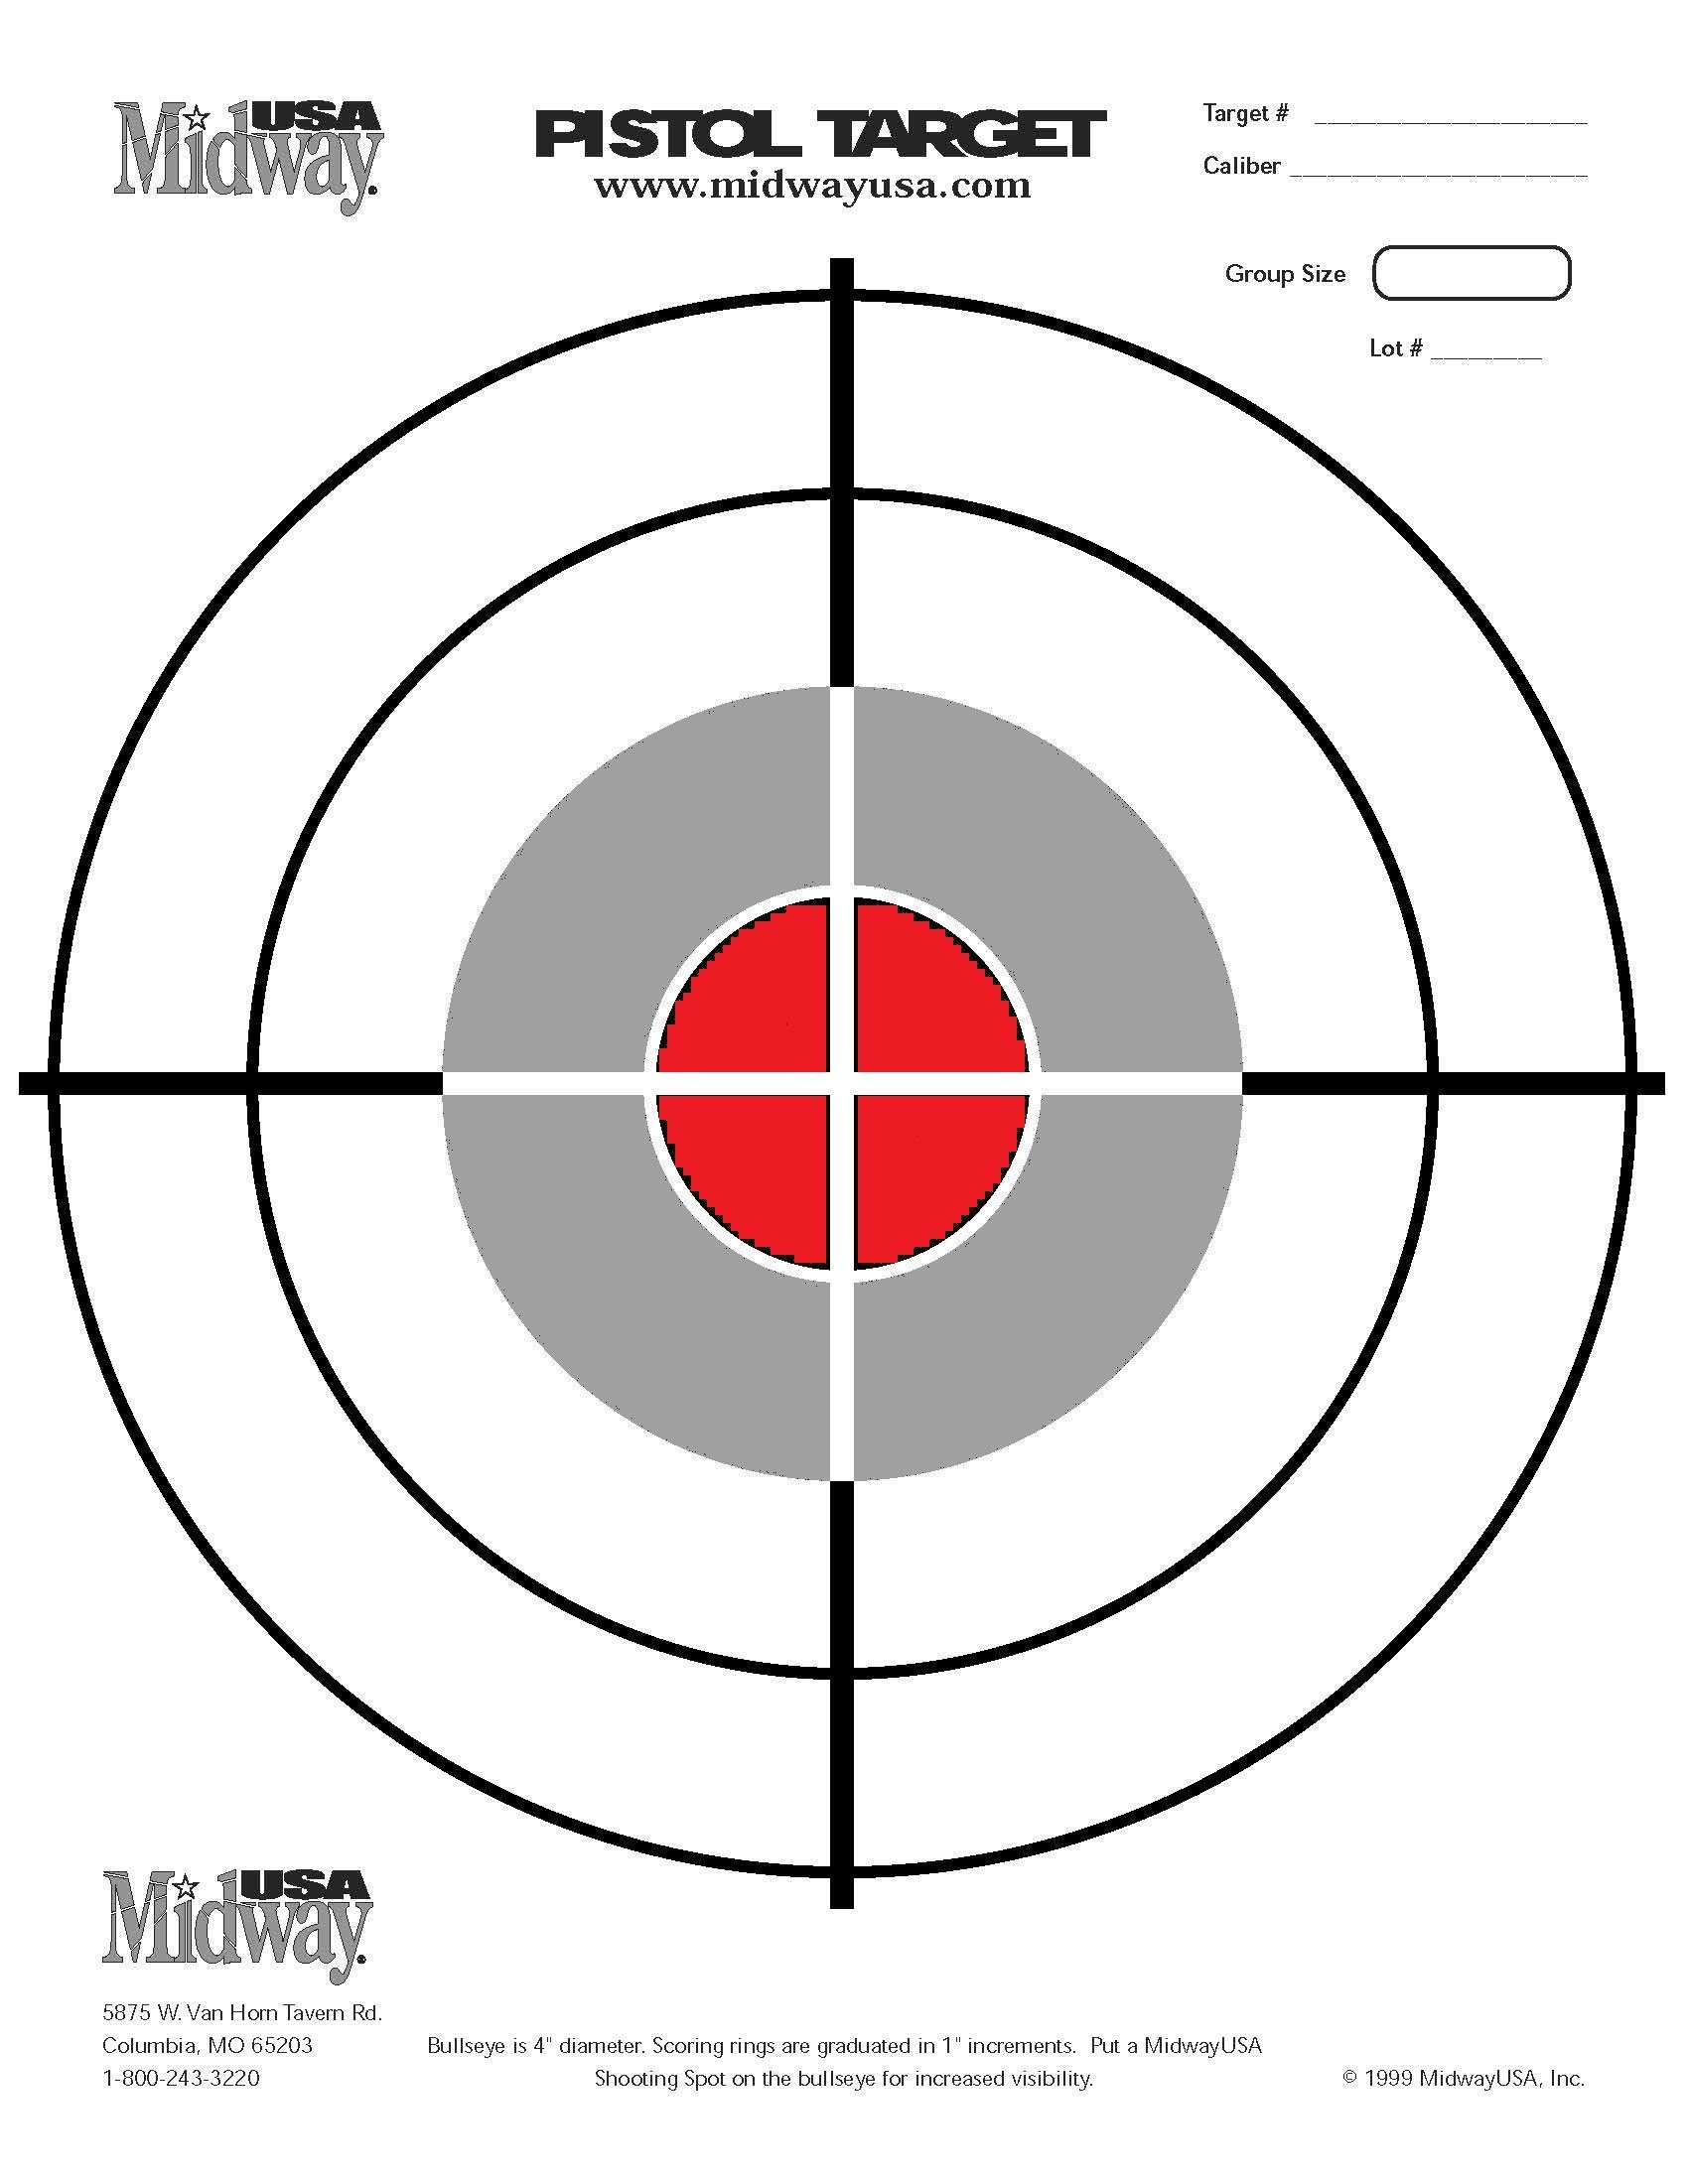 60 Fun Printable Targets | Kittybabylove - Free Printable Shooting Targets